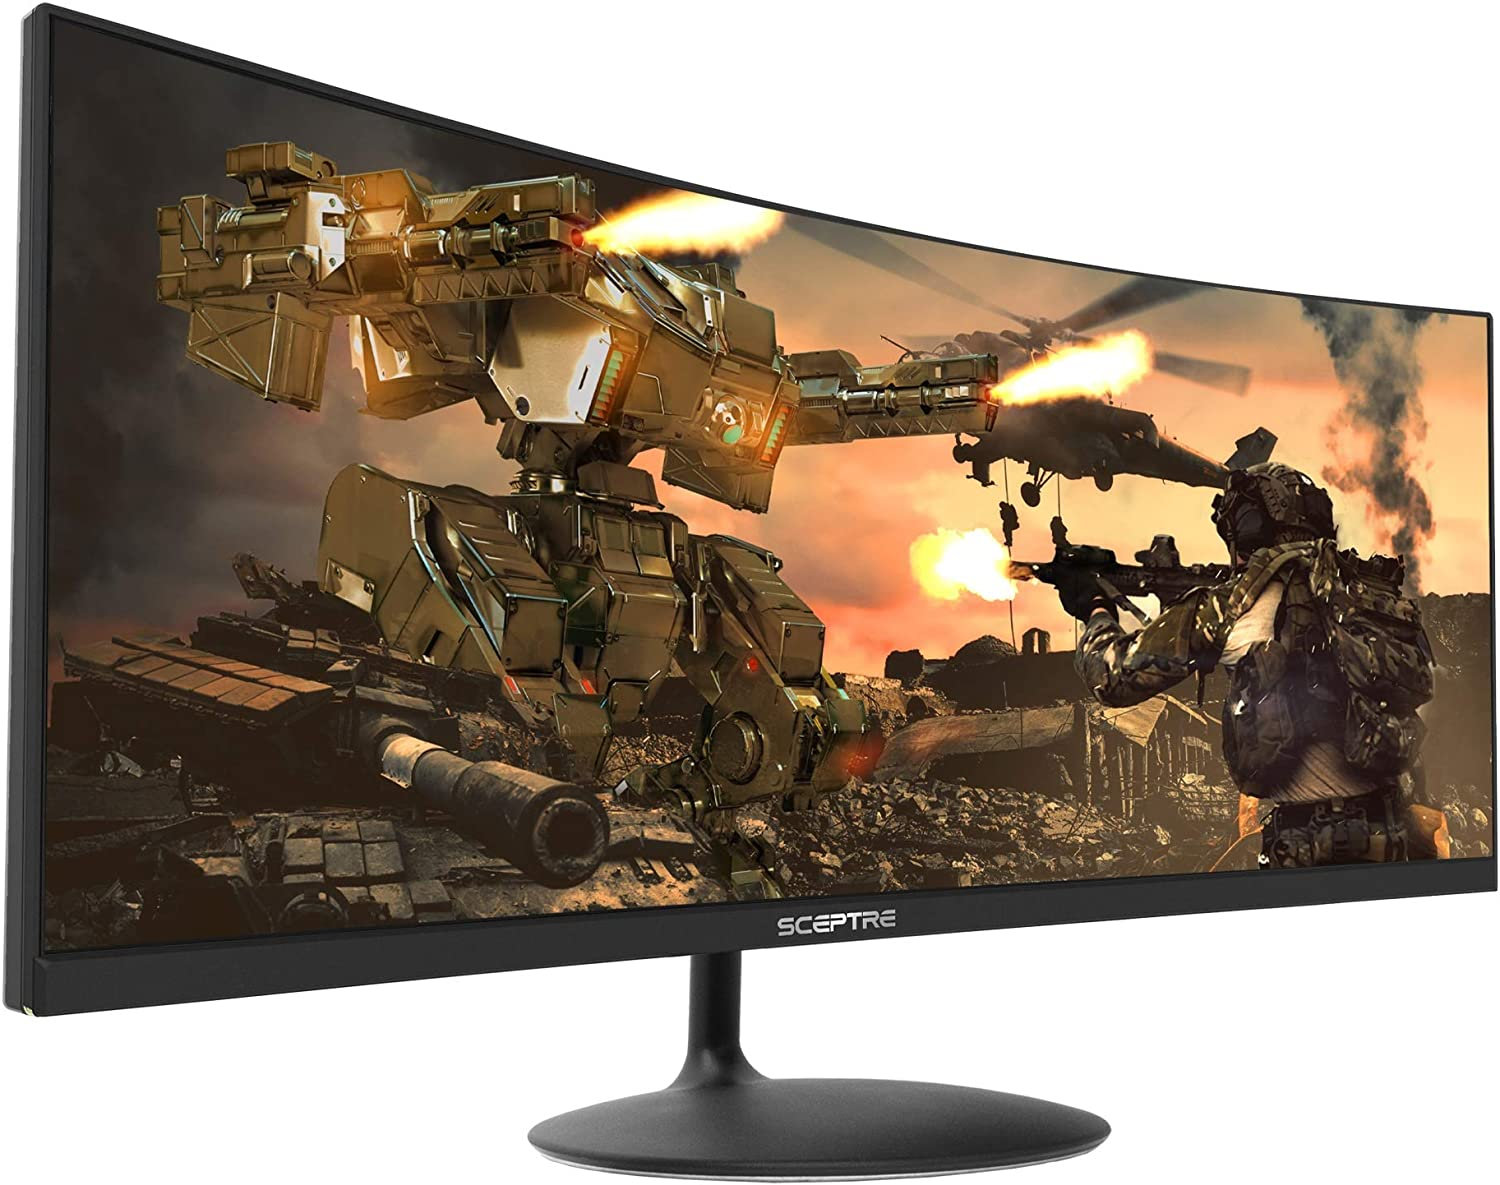 Sceptre 34- inch curved Monitor